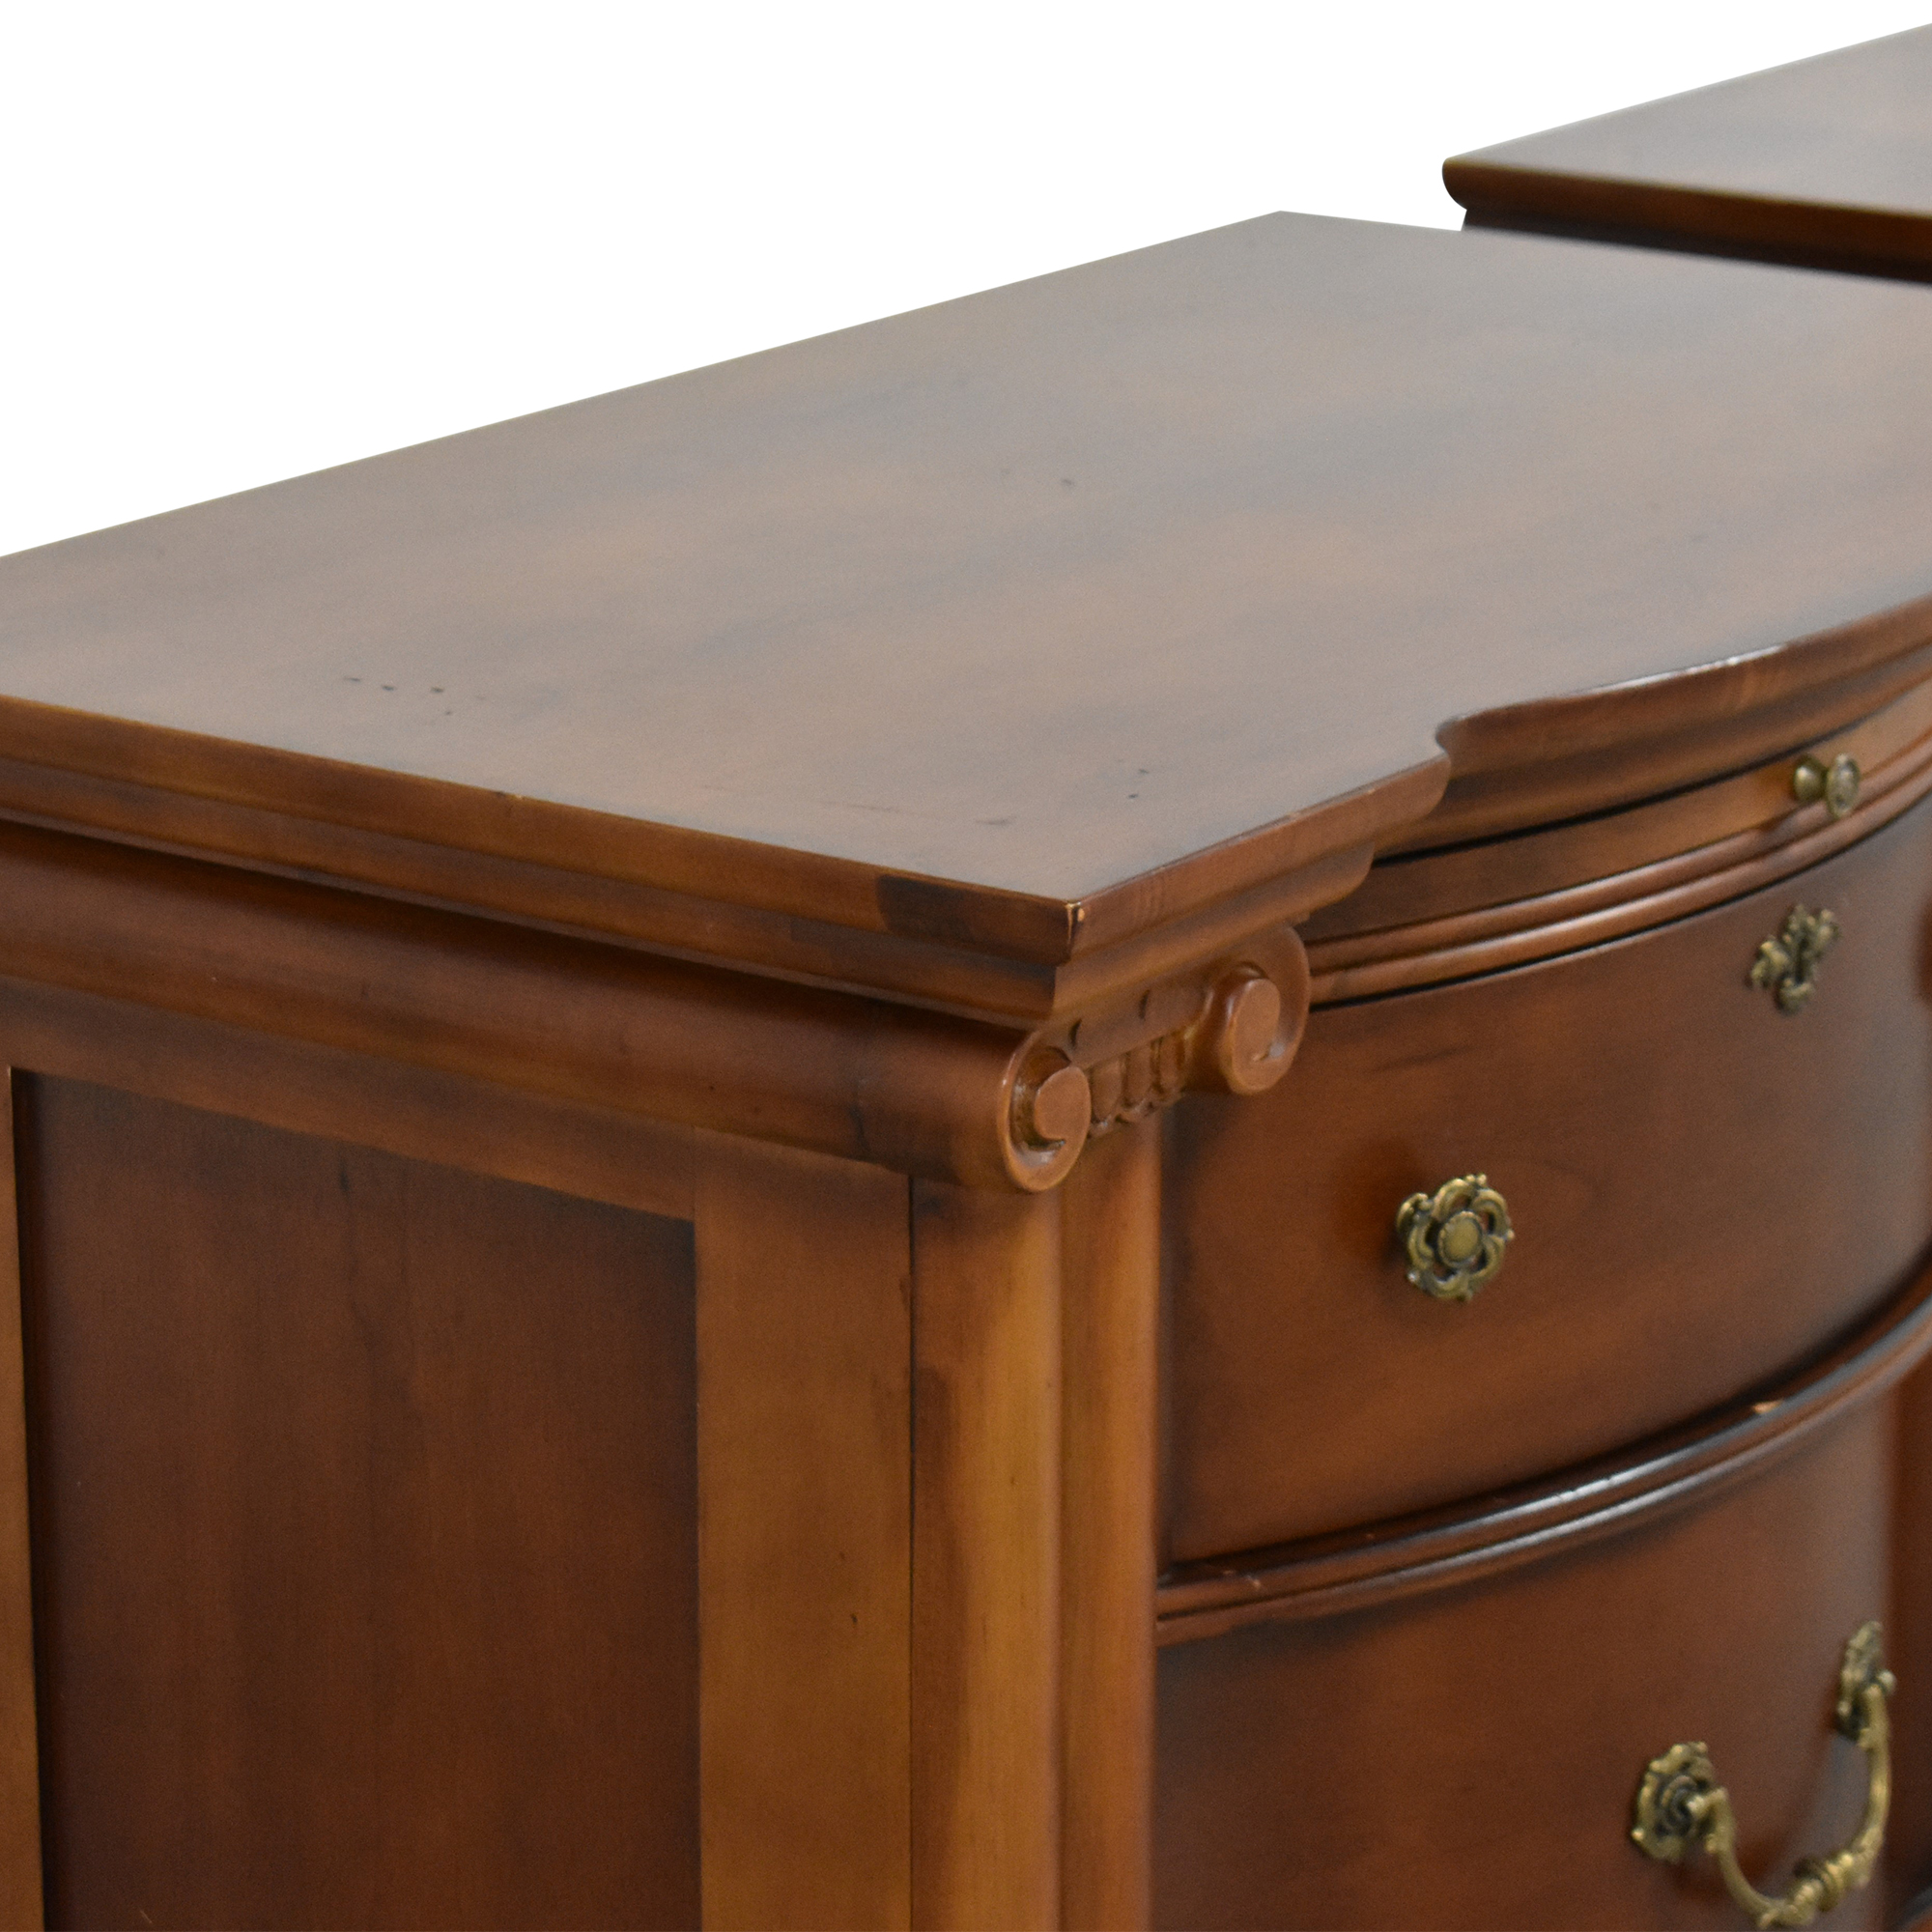 Lexington Furniture Two Drawer Nightstands / Tables